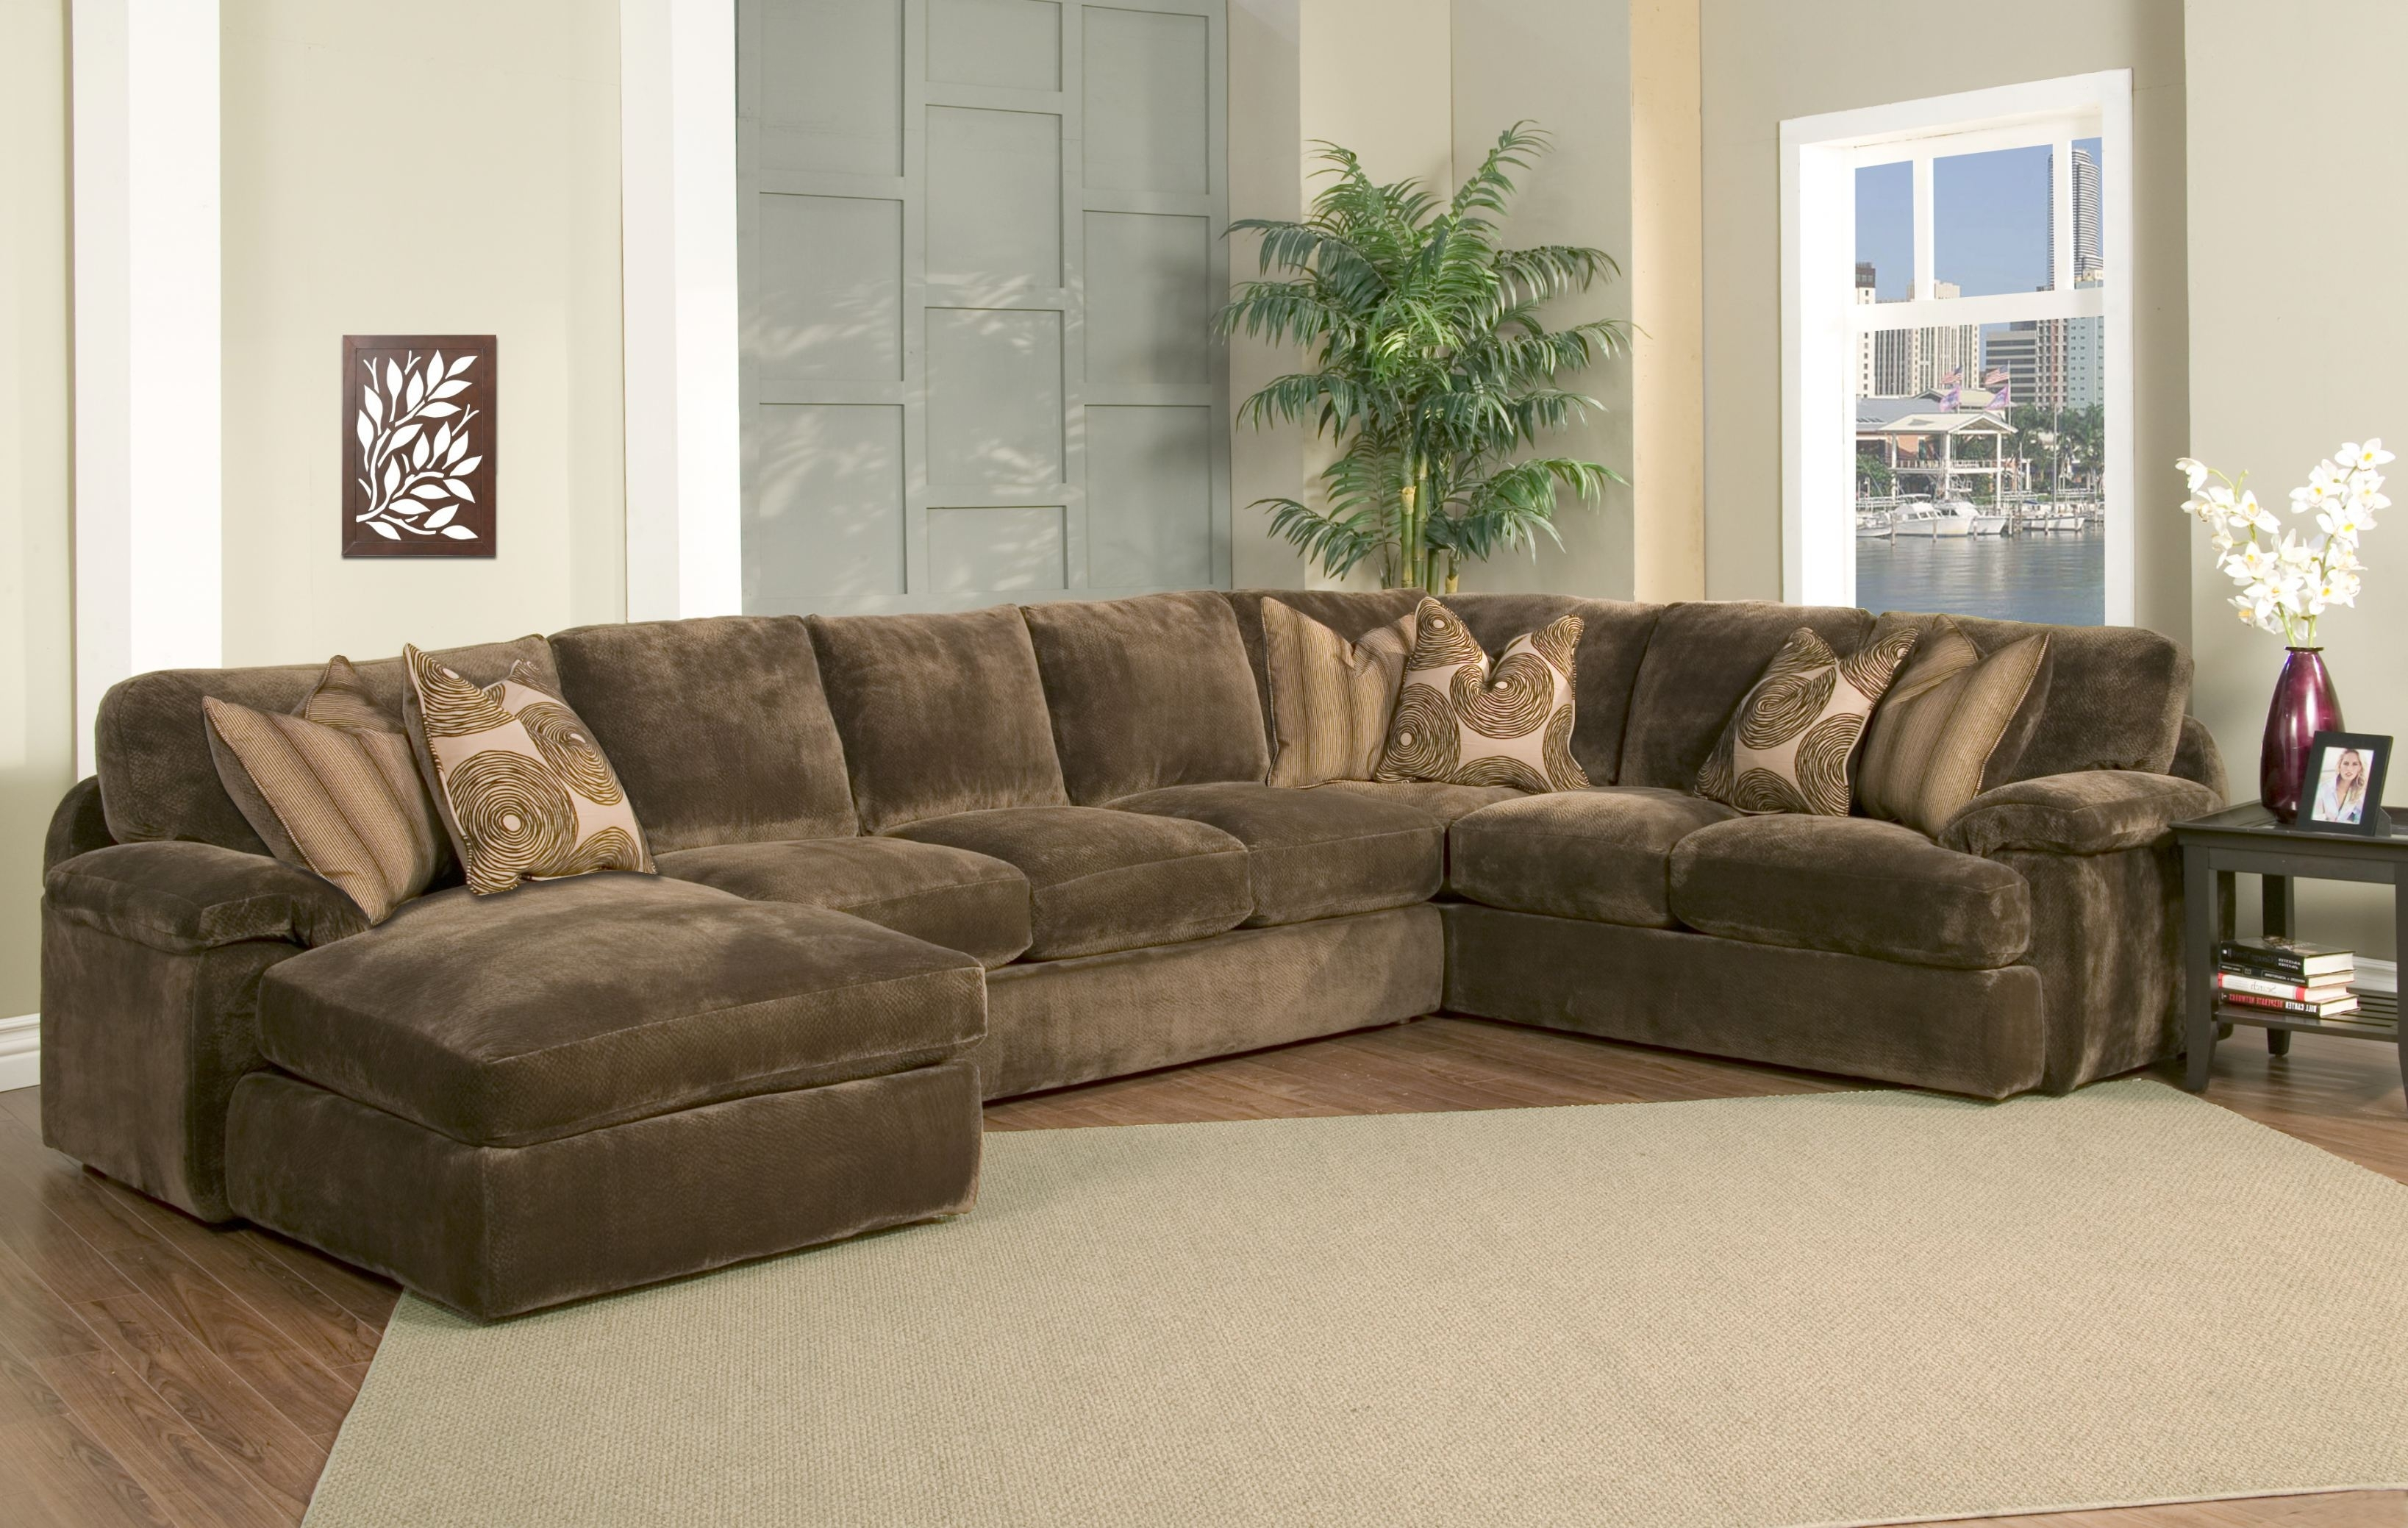 Feather Filled Cushions | Robert Michaels Sofa | Robert Michaels For Down Filled Sofas (View 5 of 10)